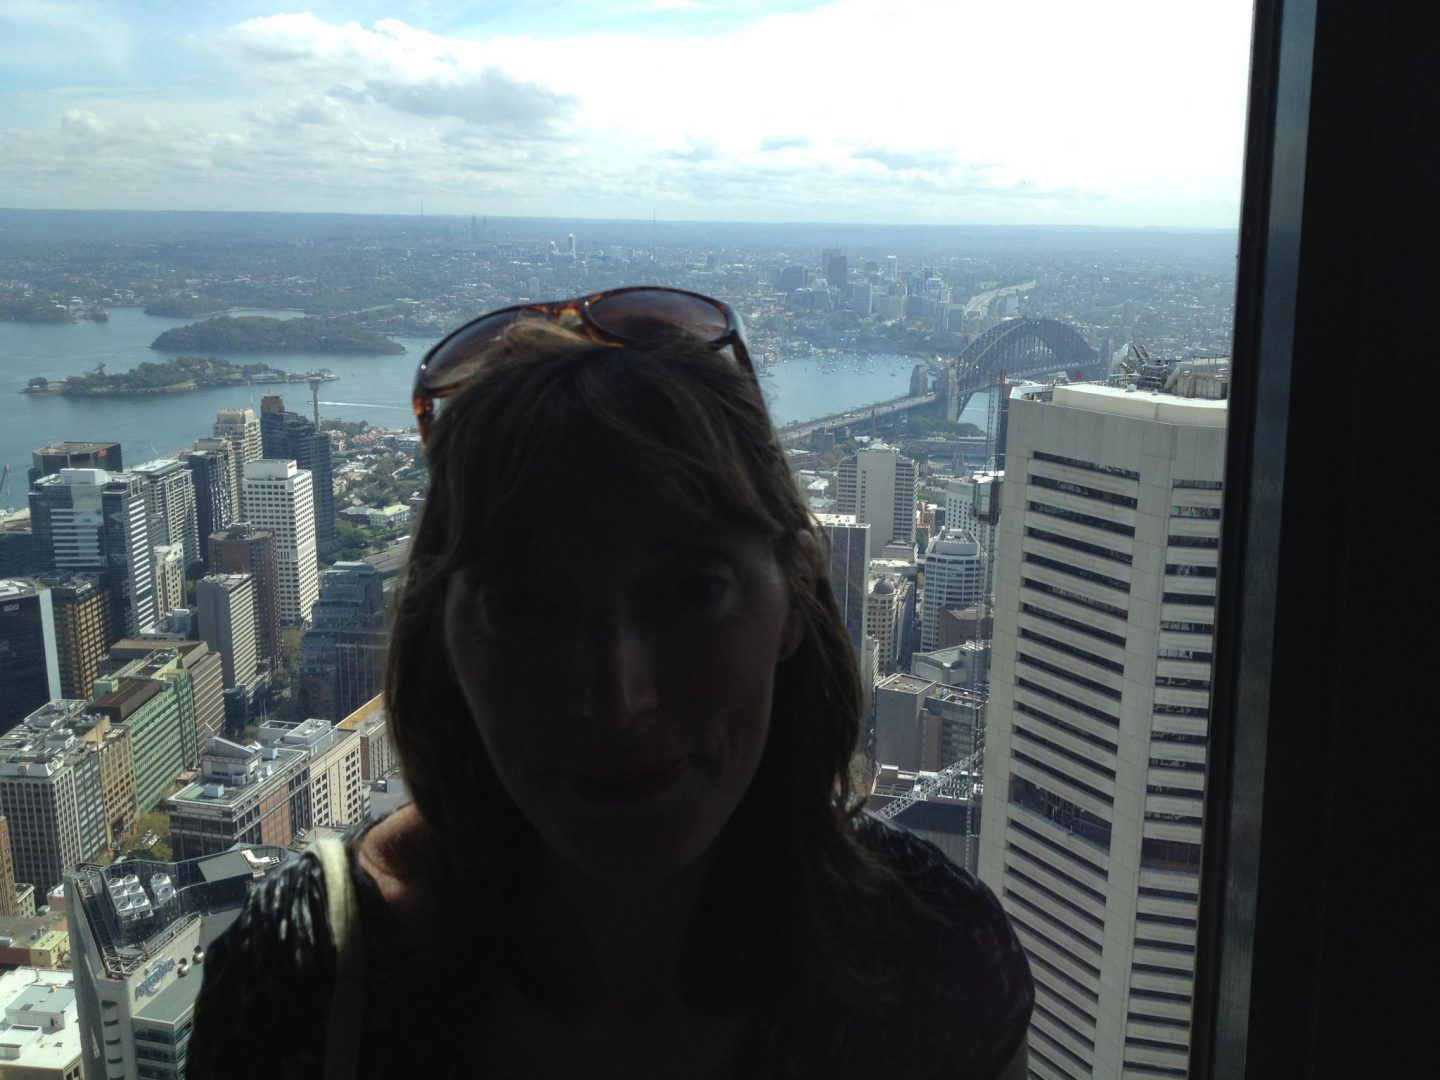 Mum in front of the view from the Sydney Tower Eye, Australia